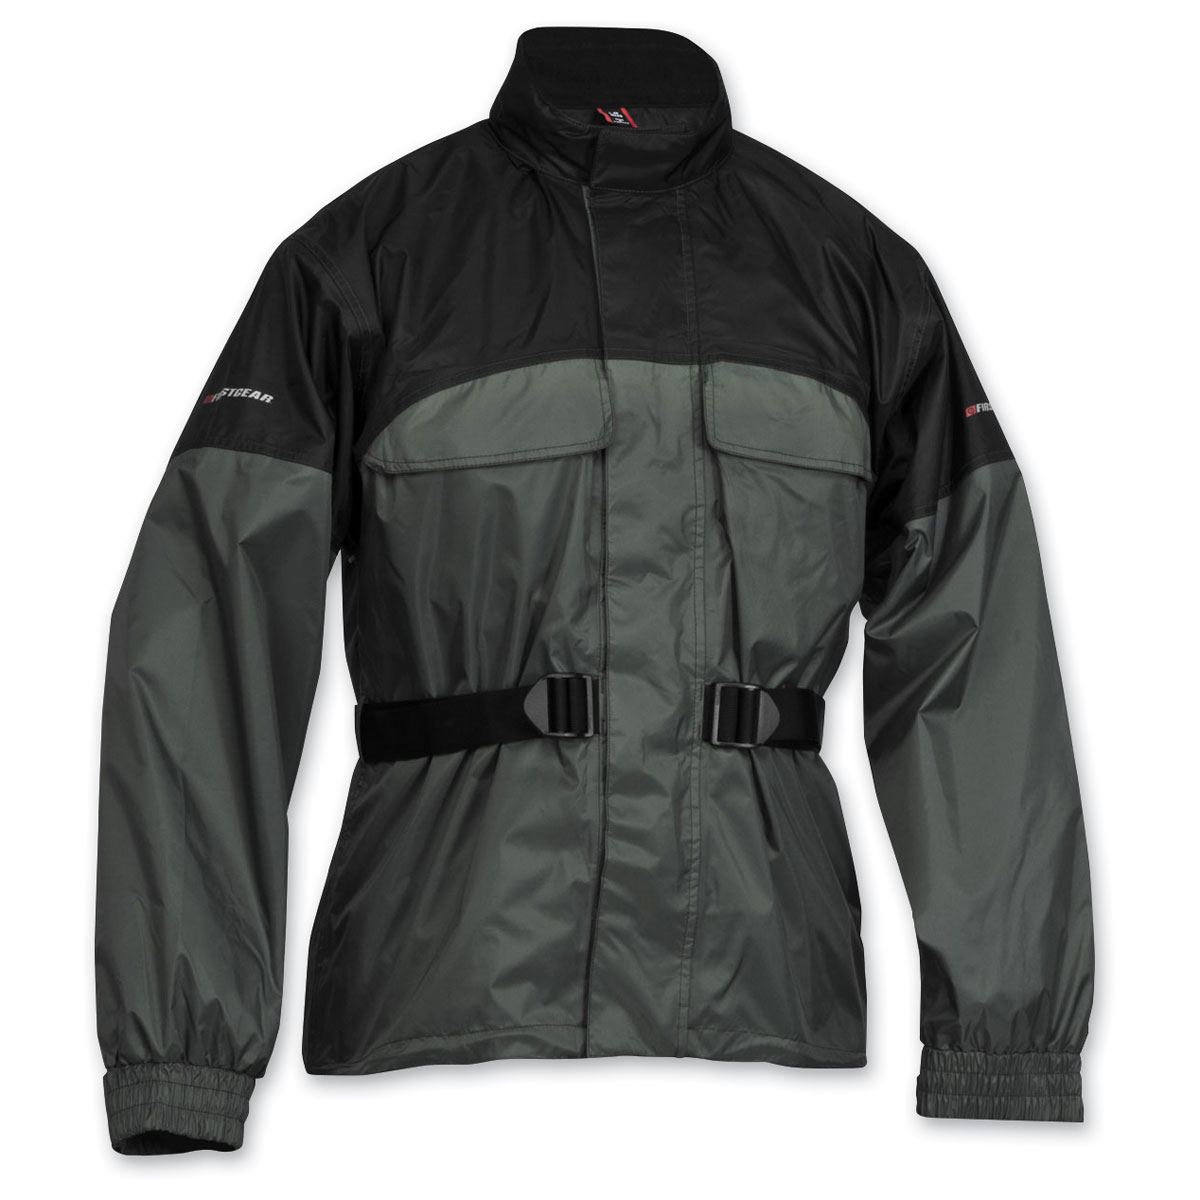 Firstgear Men's Rainman Black/Silver Rain Jacket